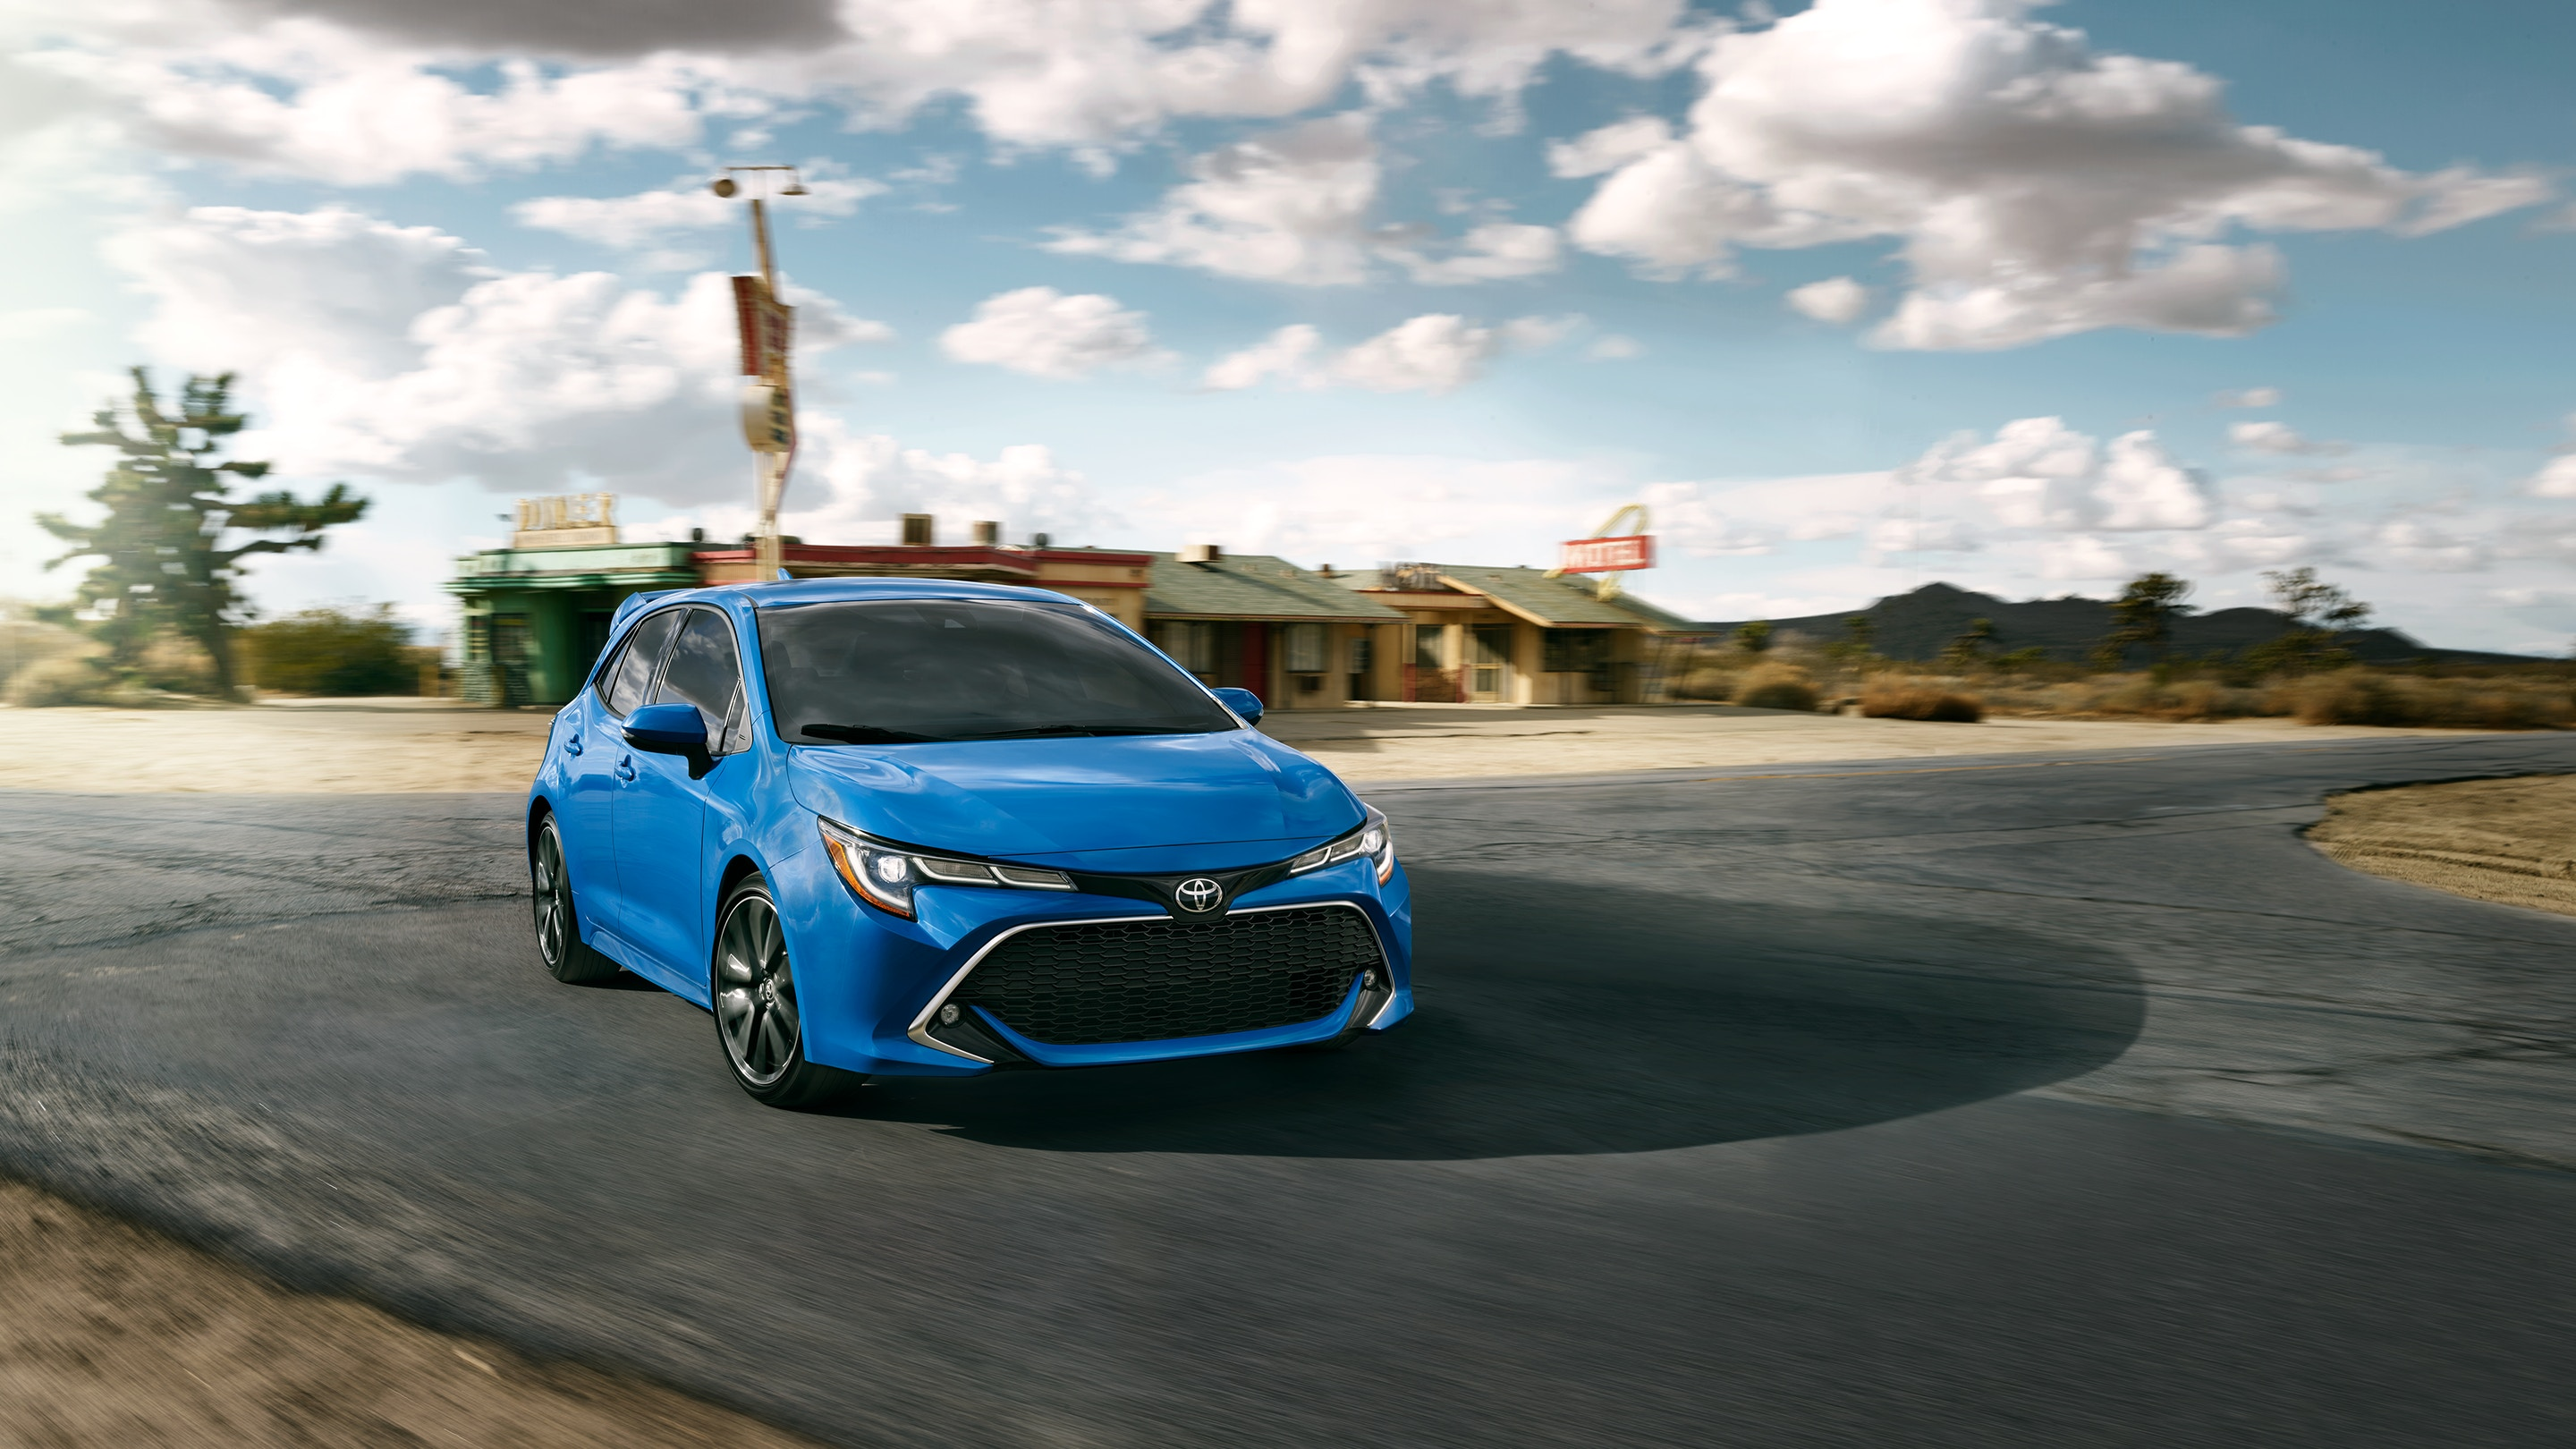 Bright blue Toyota corolla hatchback XSE